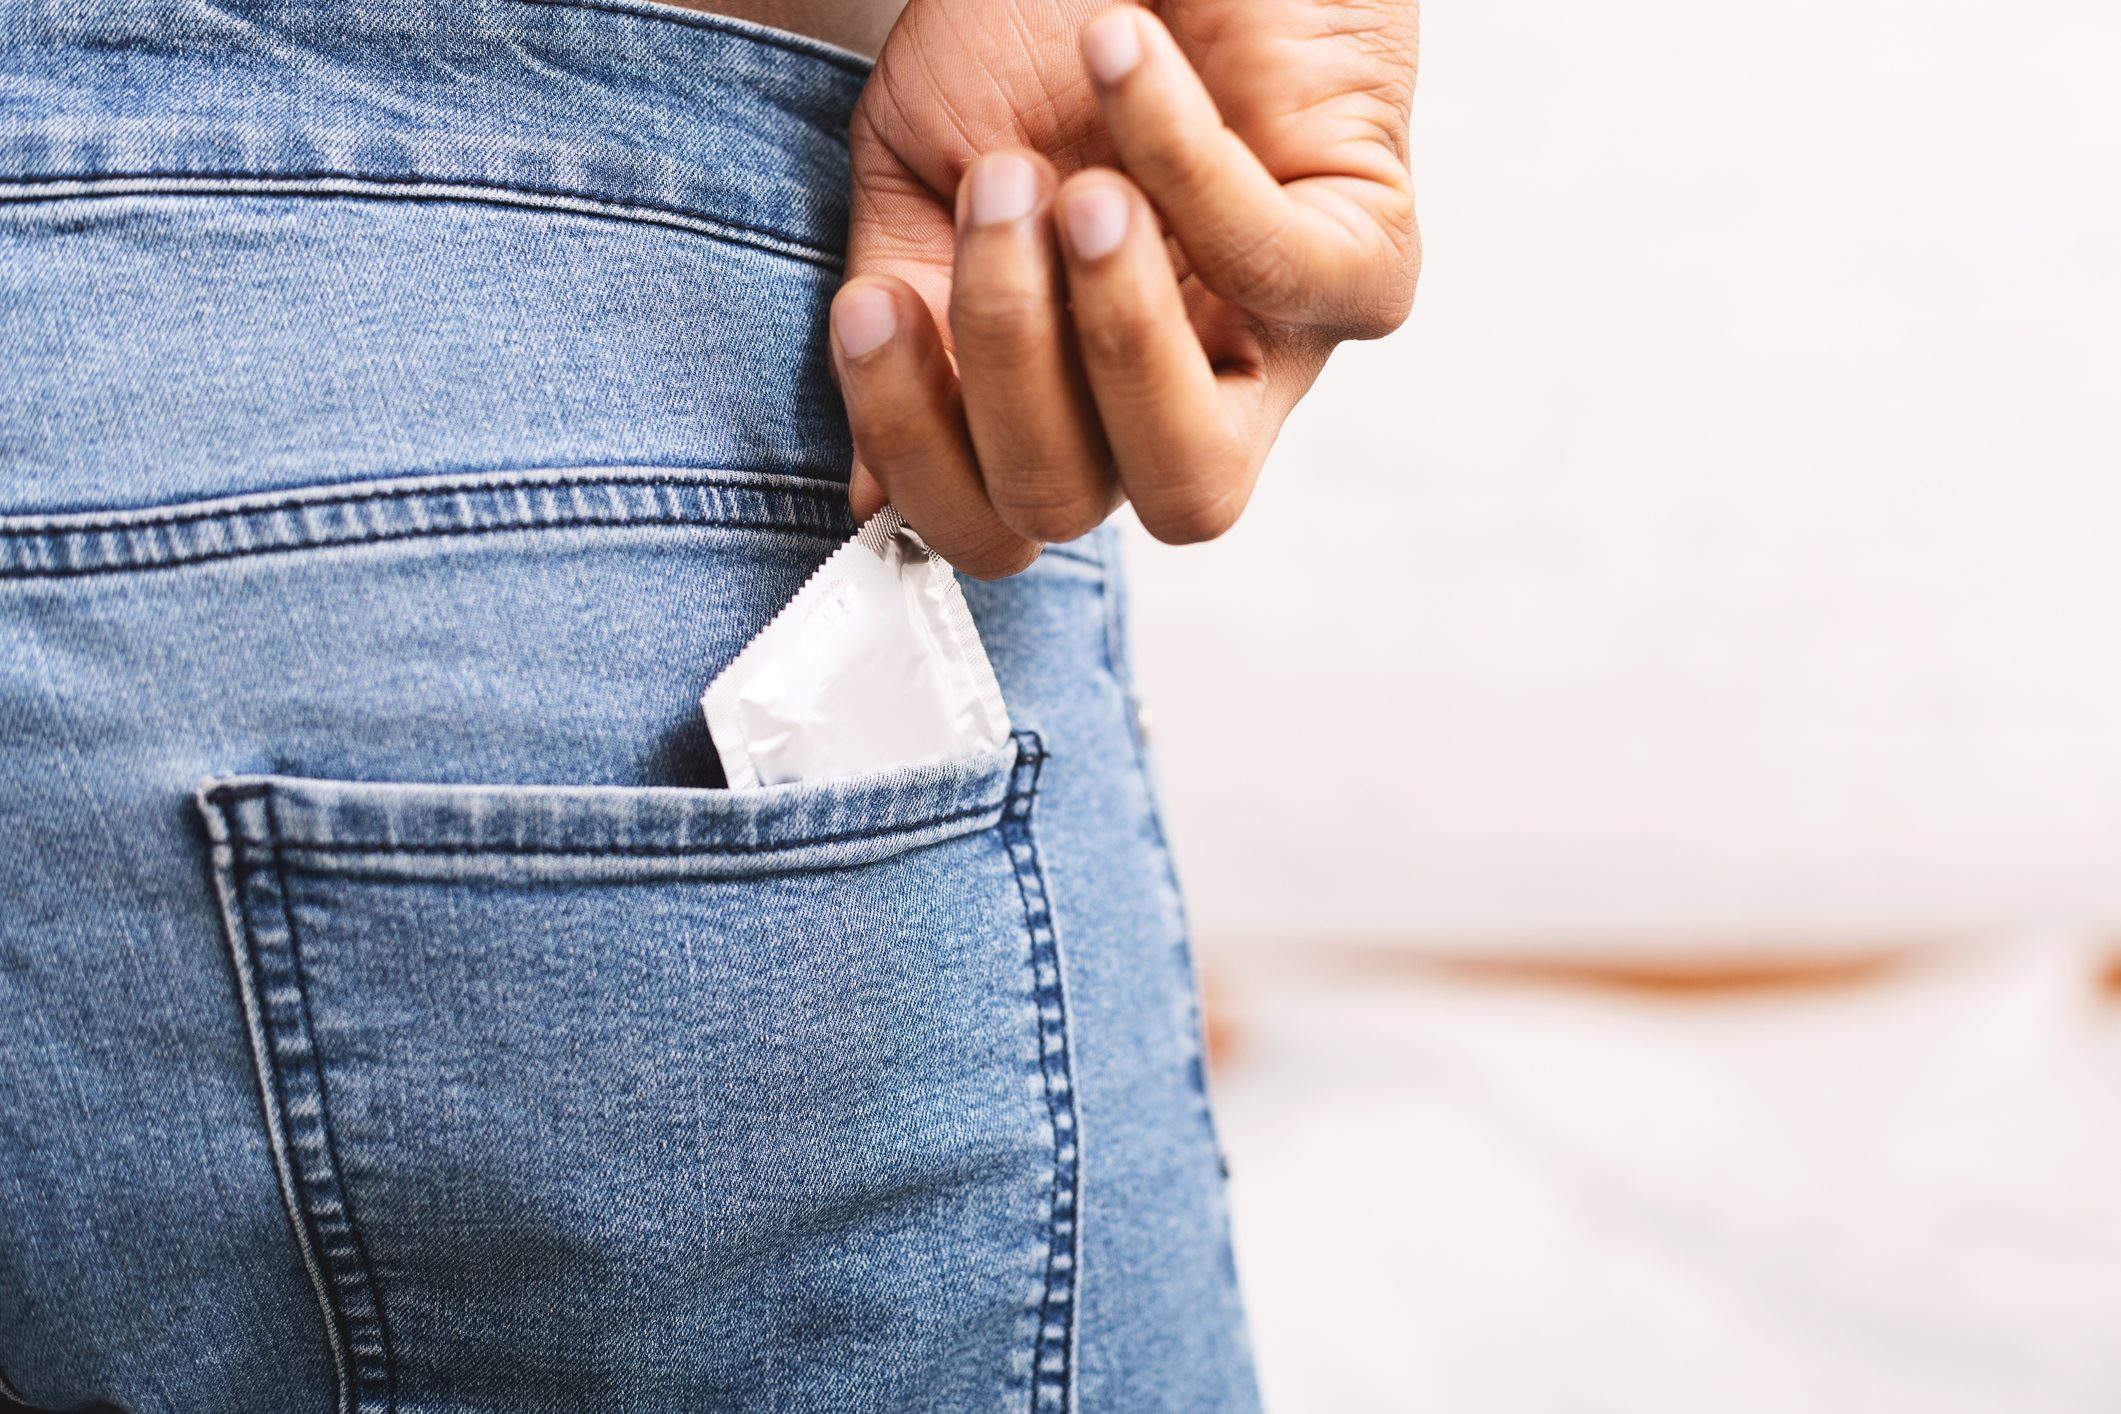 close up of condom in woman's back jean pocket